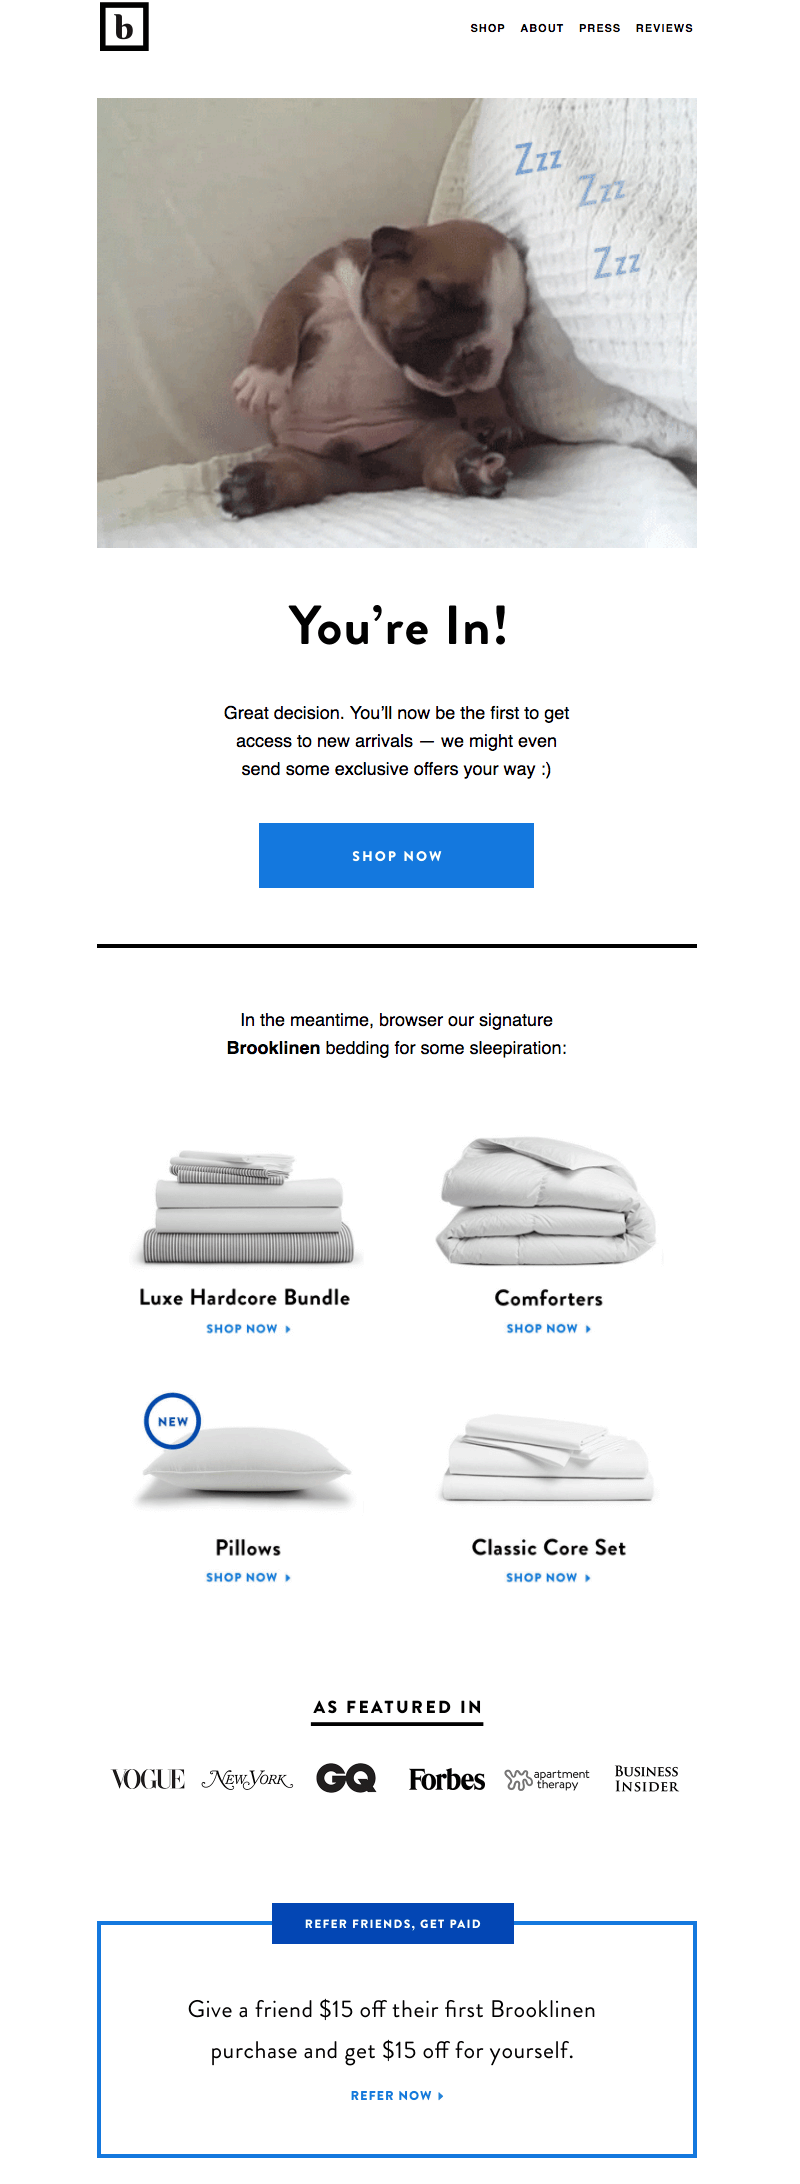 brooklinen welcome email design tips